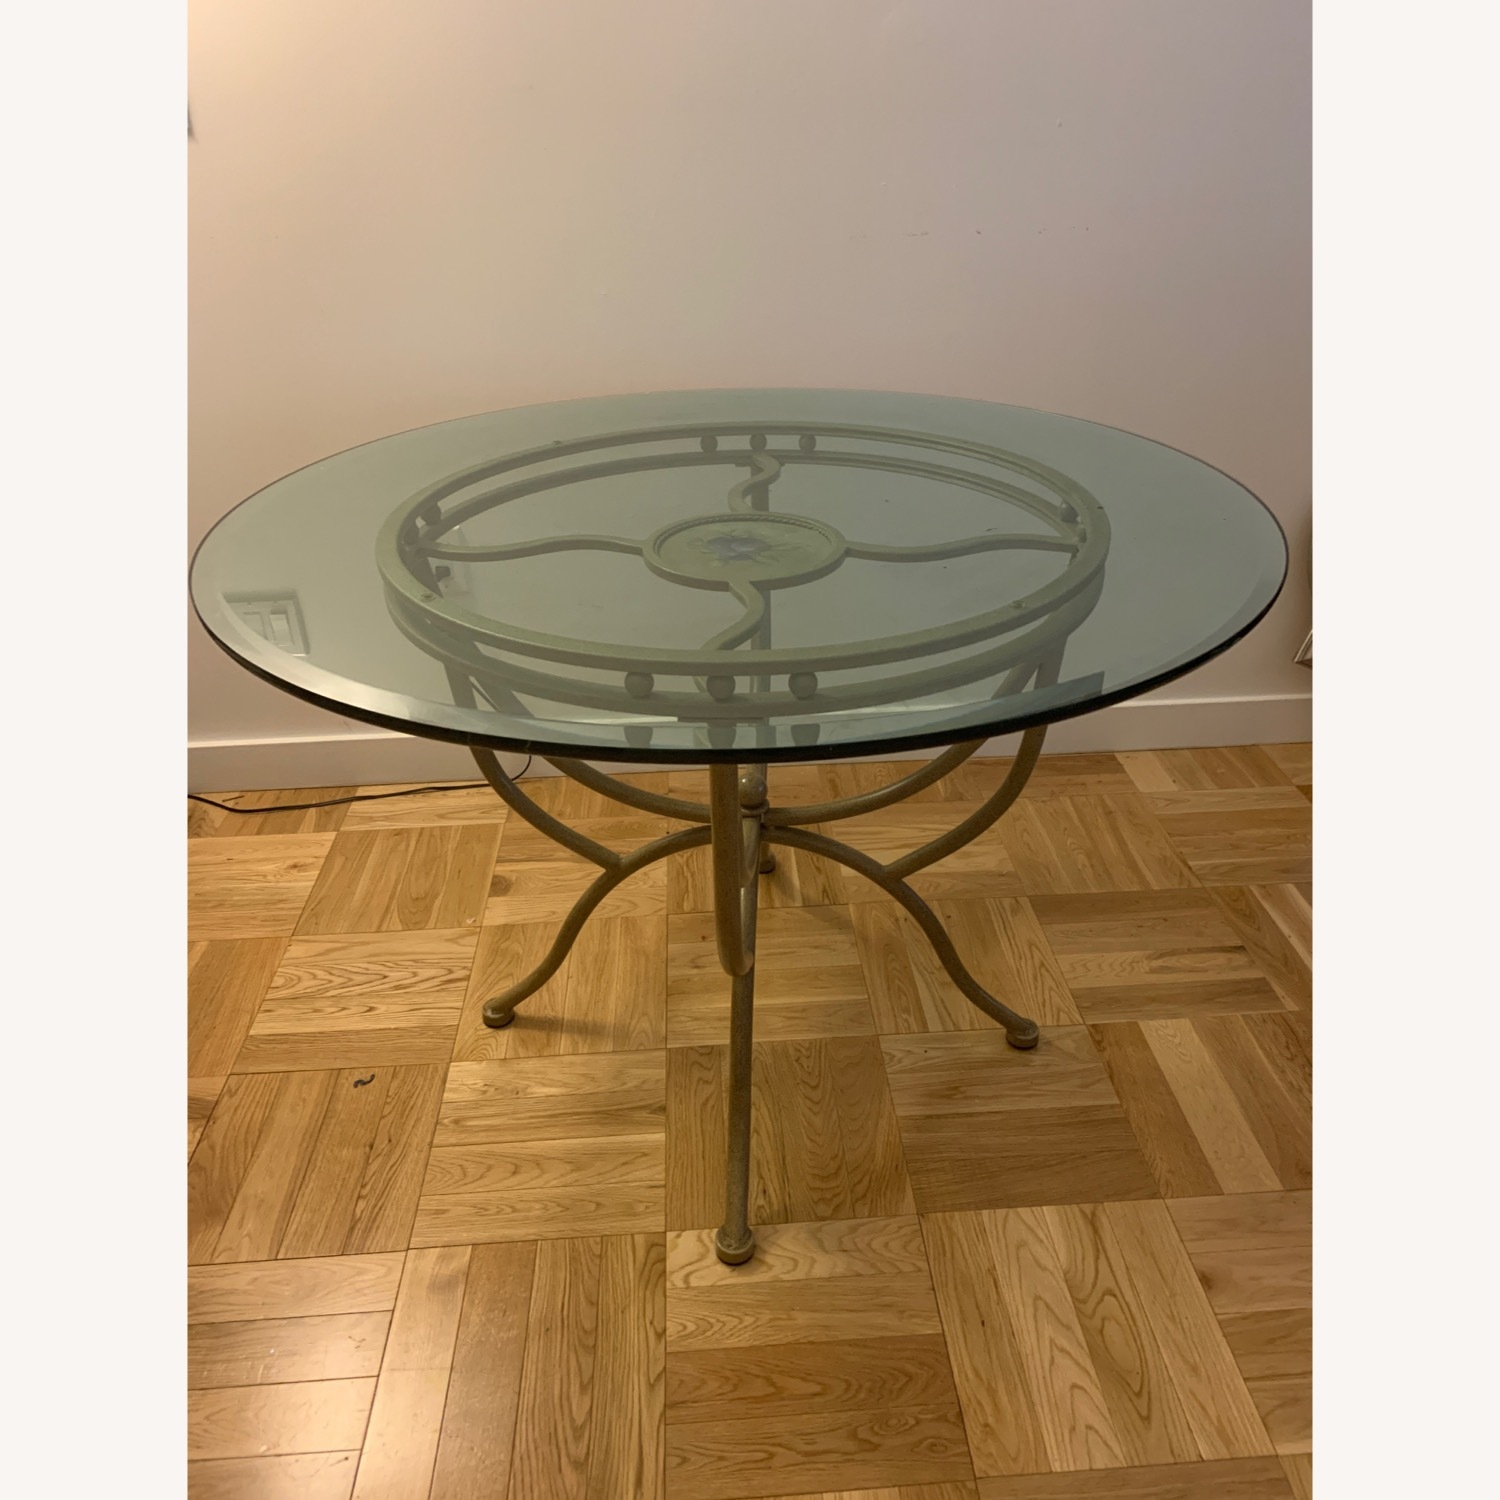 Vintage Glass Dining Room Table and Chair Set - image-3